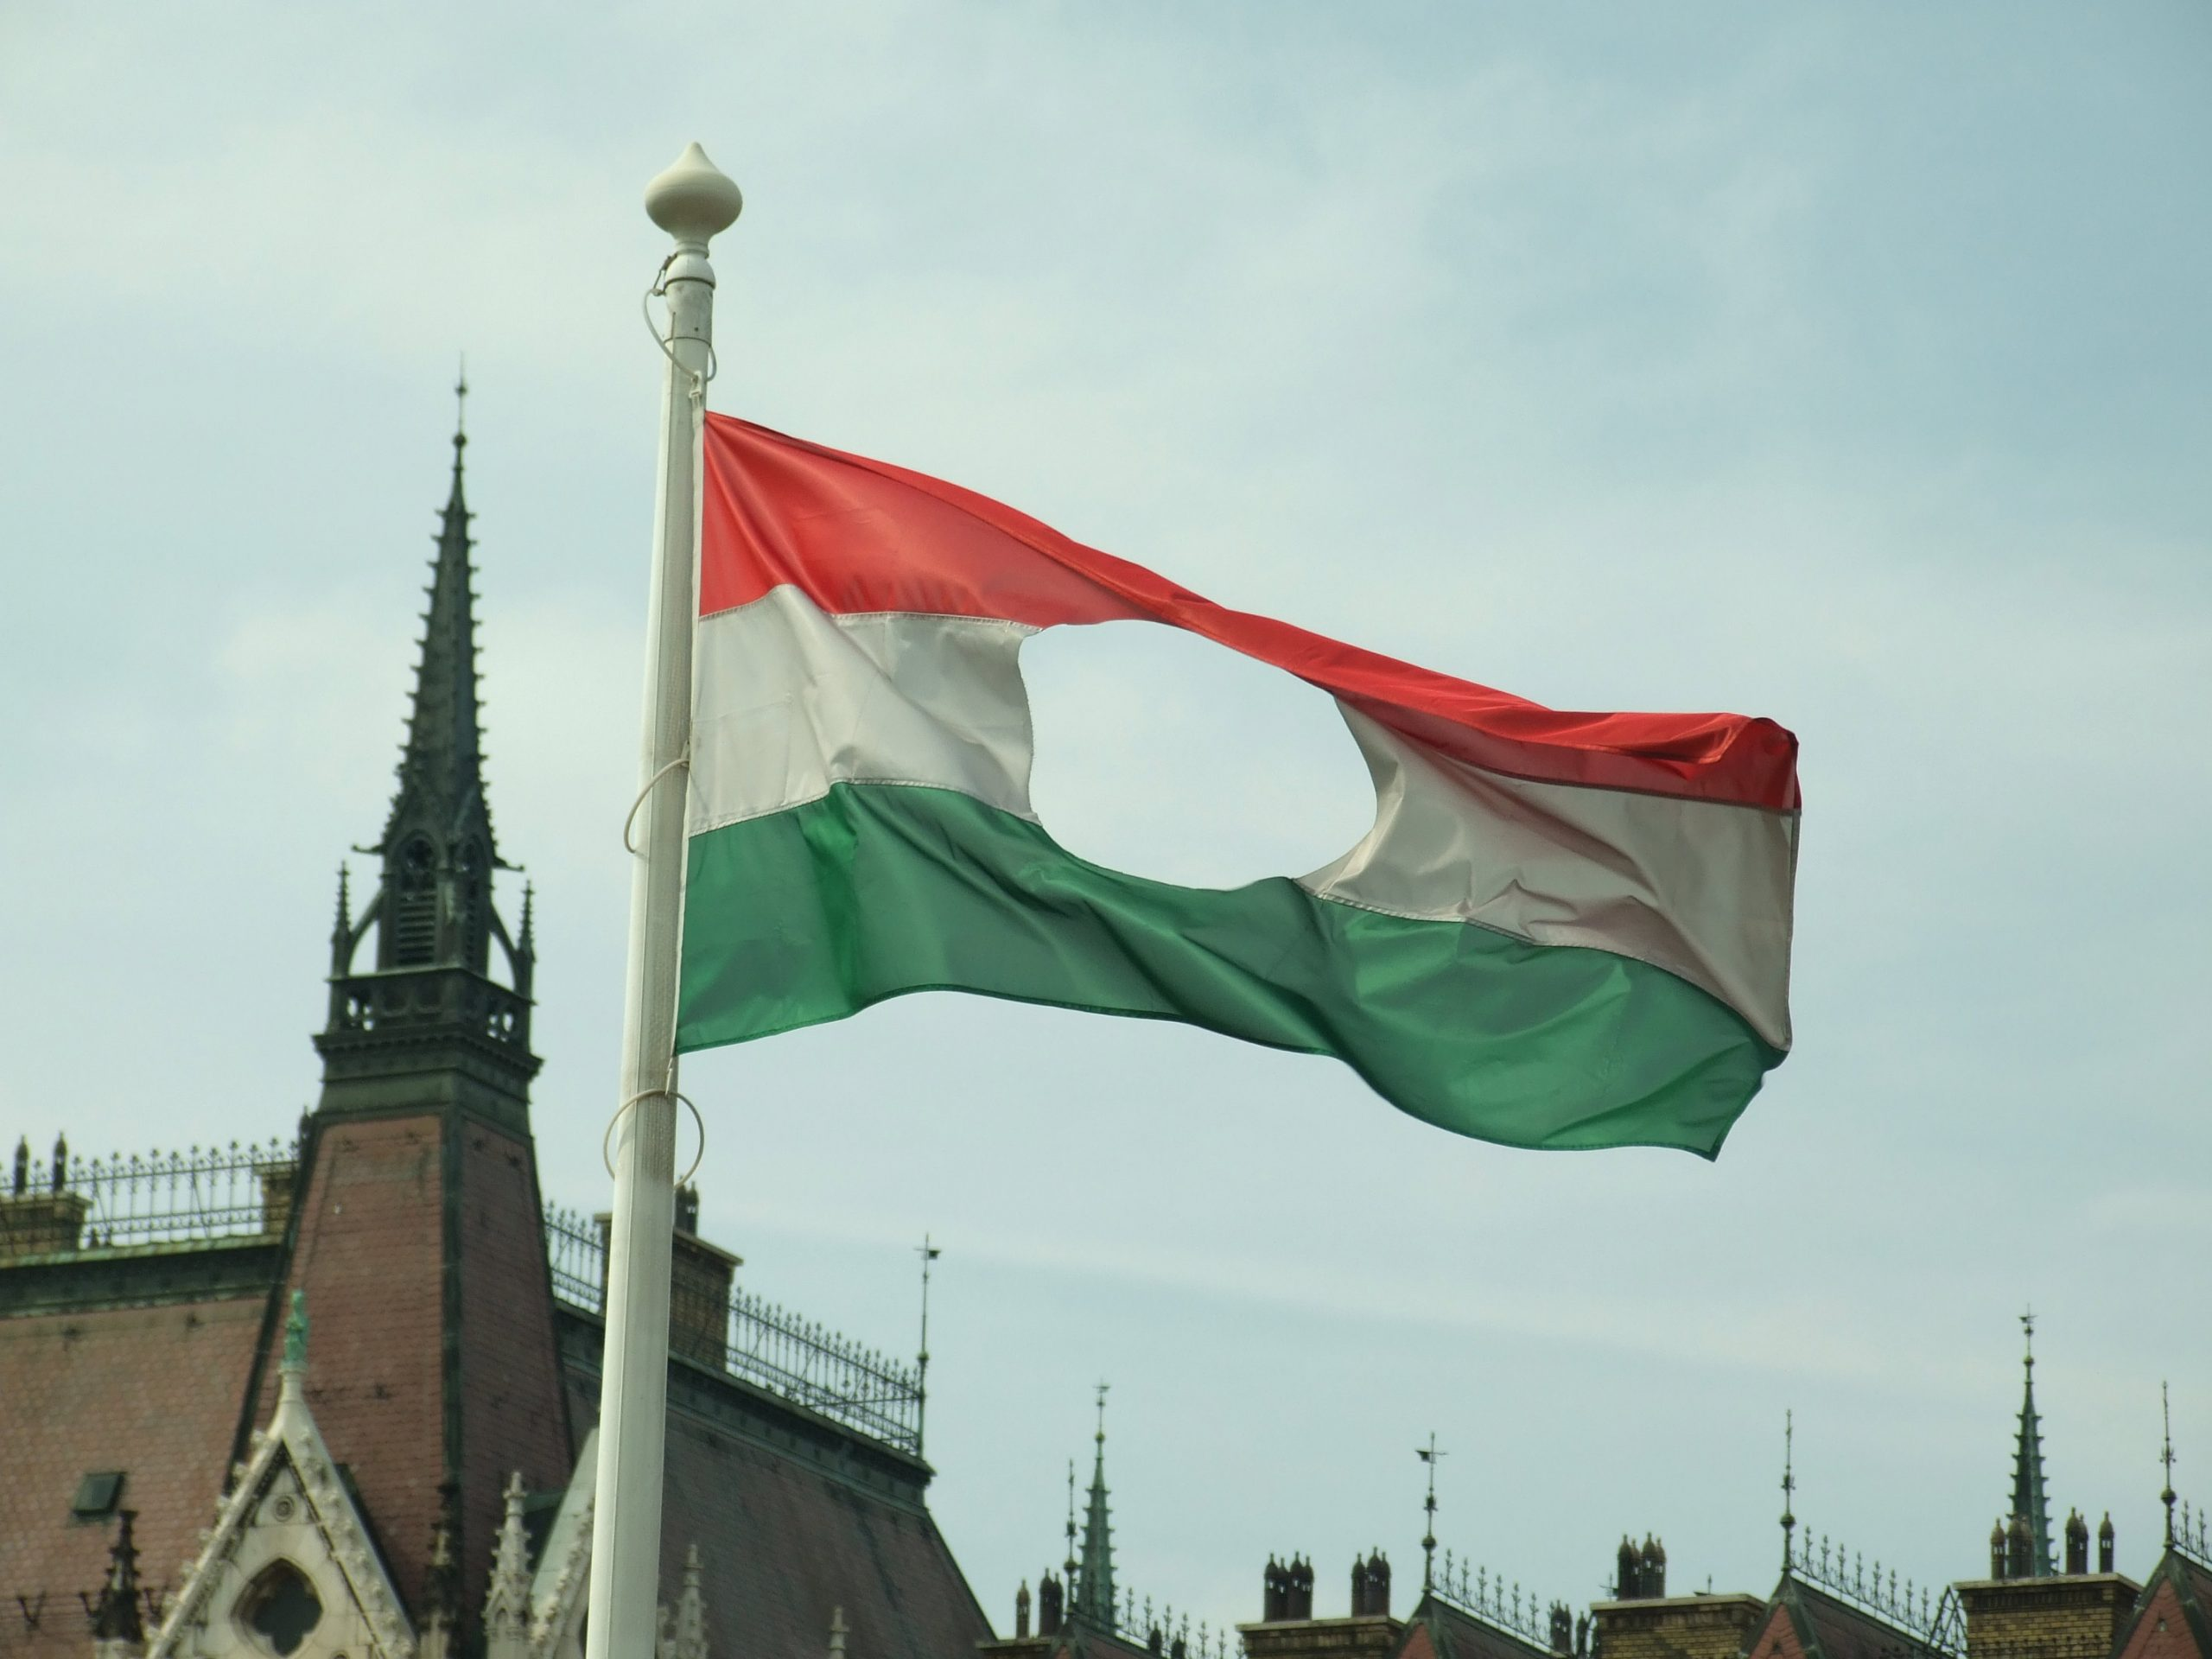 The Hungarian rebels cut the Communist emblem out of the middle of the Hungarian flag, leaving a torn a three color flag as the symbol of the revolt